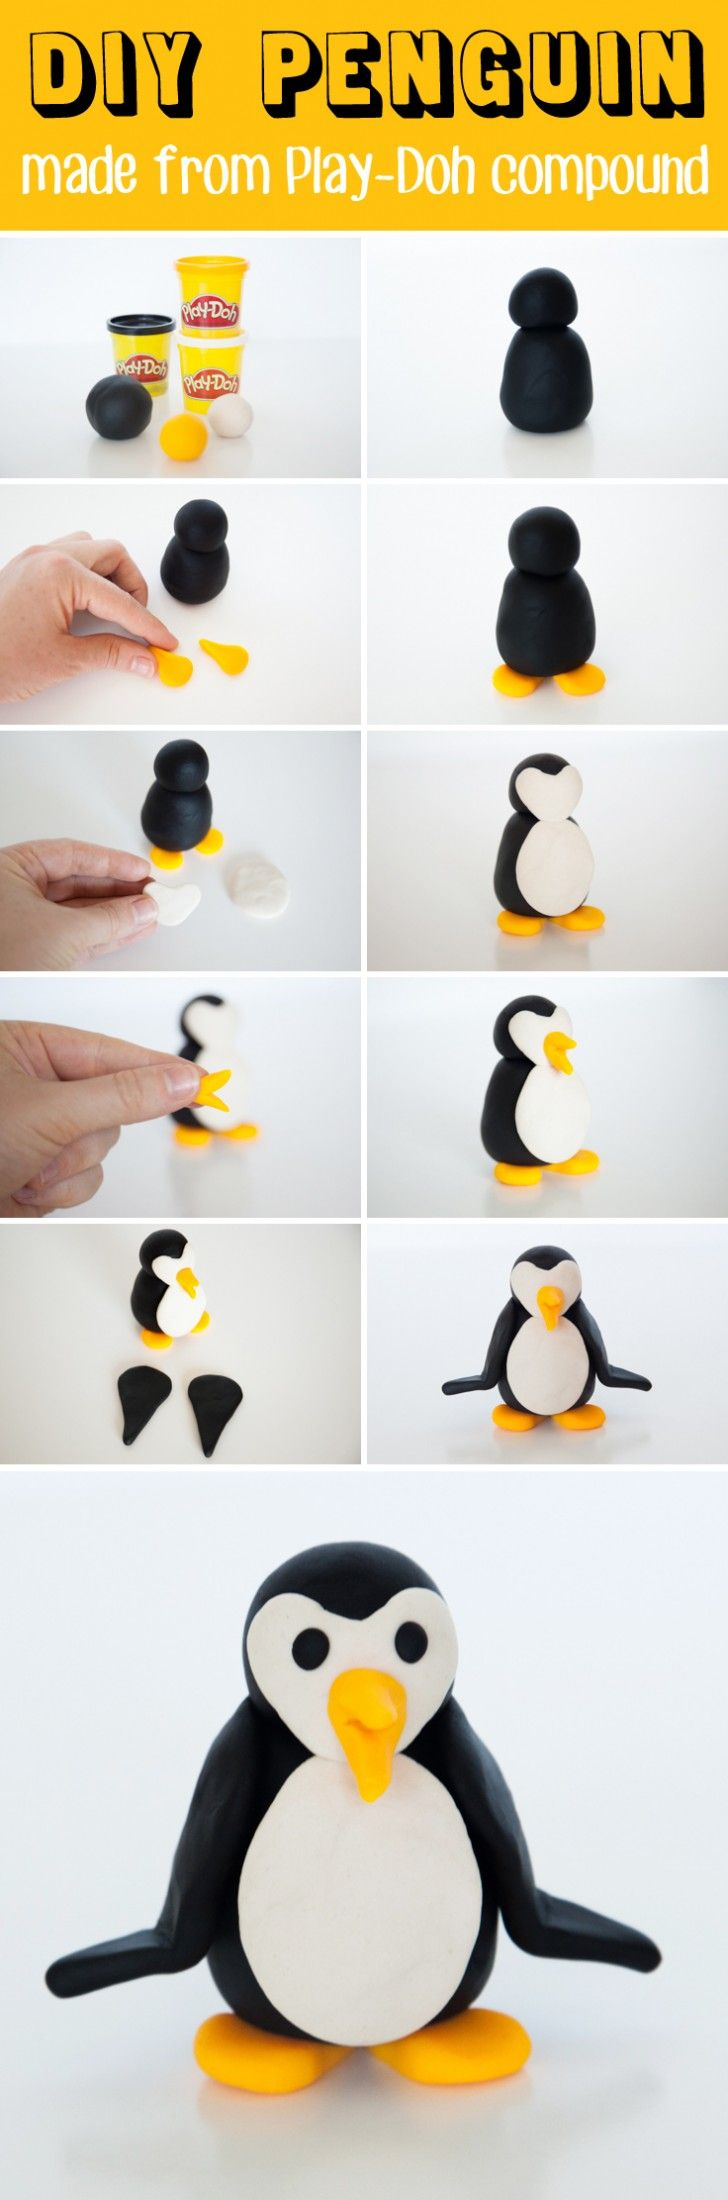 How to draw a penguin: master class 43